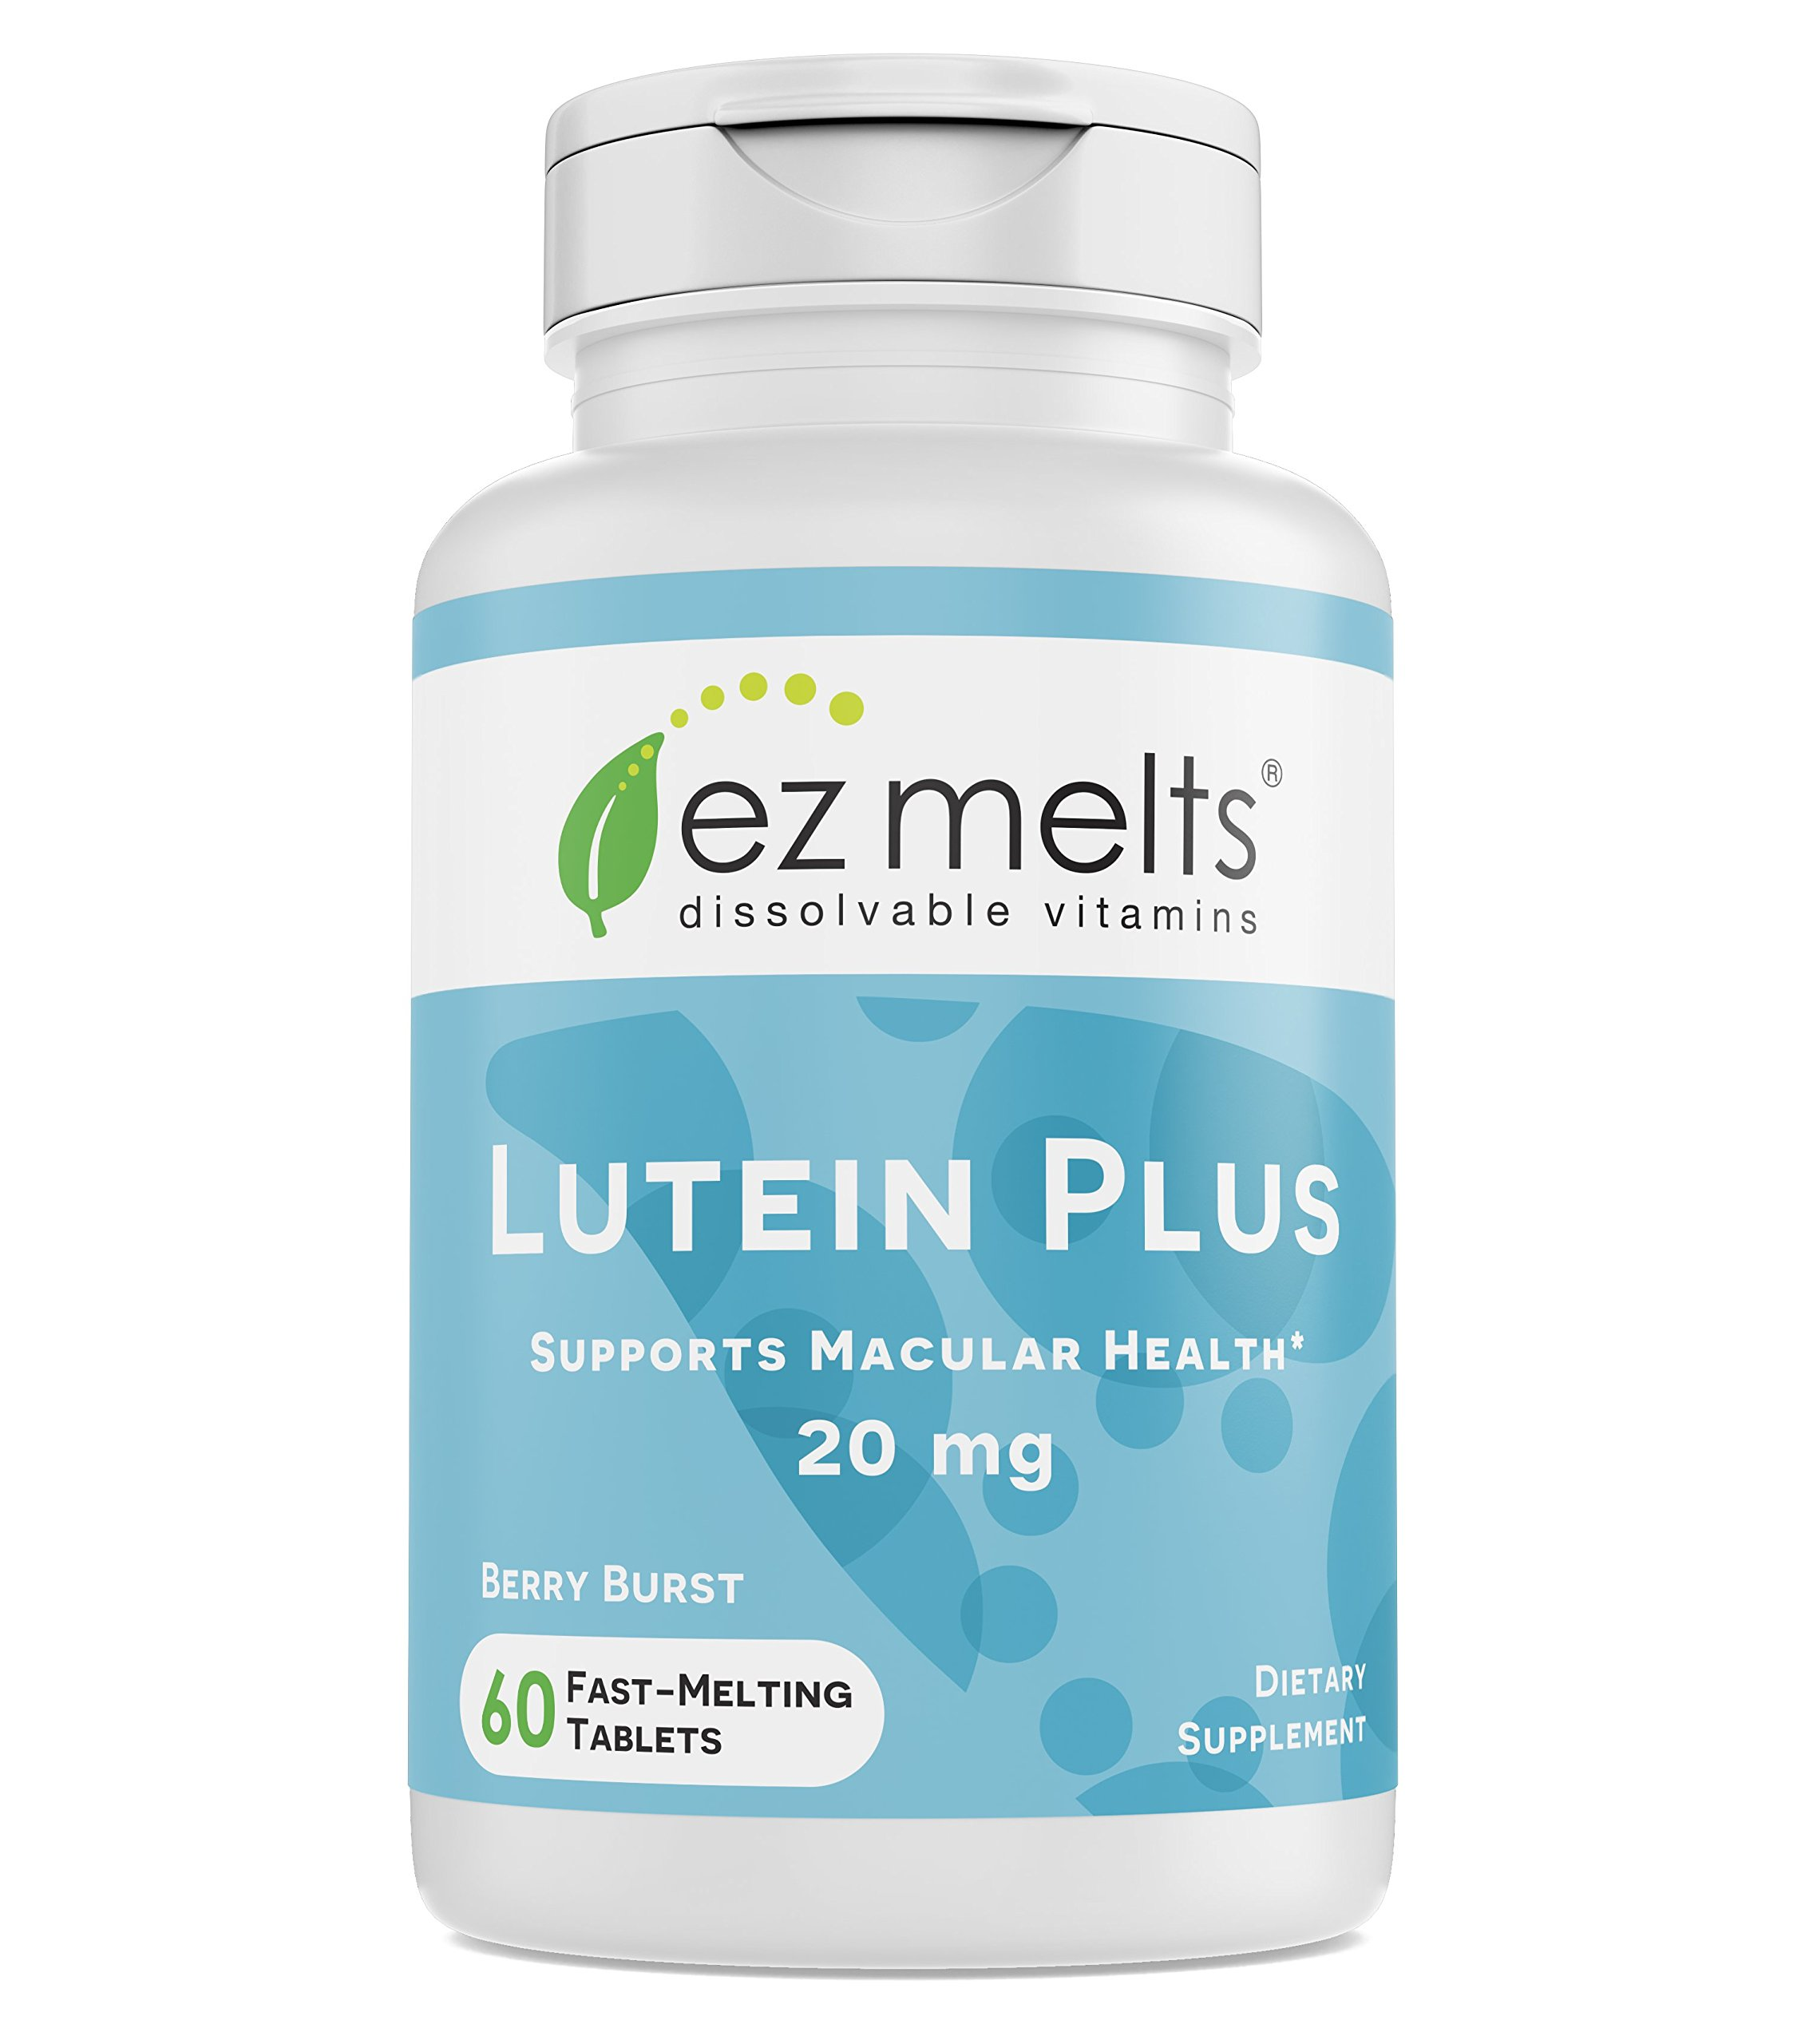 EZ Melts Lutein Plus with Zeaxanthin and Zinc, 20 mg, Sublingual Vitamins, Vegan, Zero Sugar, Natural Berry Flavor, 60 Fast Dissolve Tablets by EZ Melts